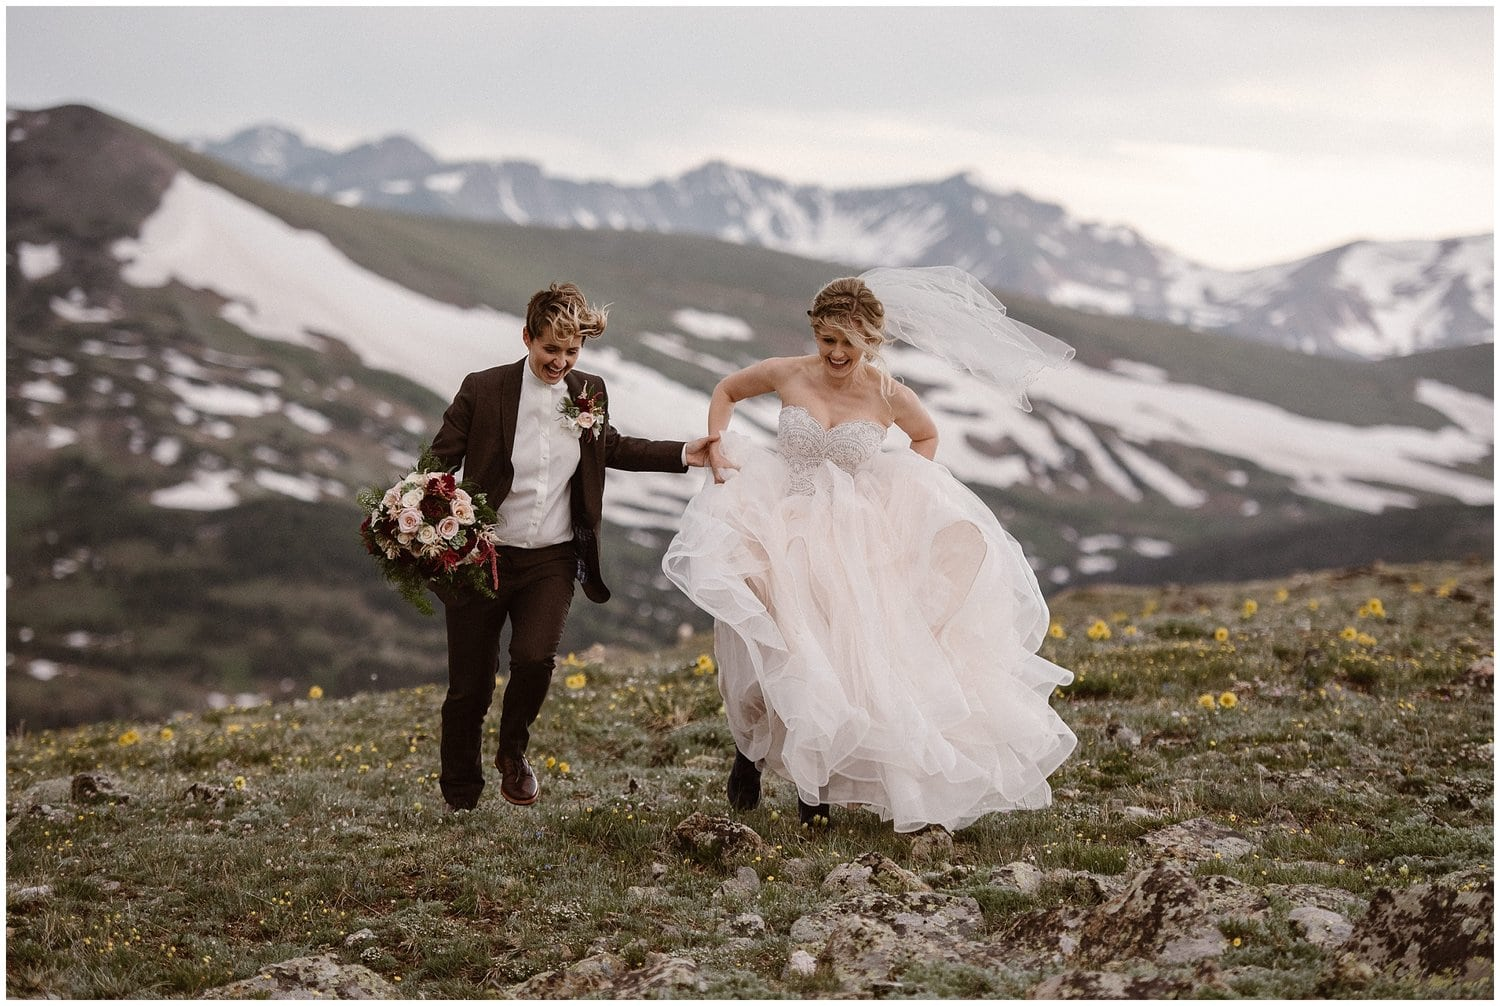 A couple runs hand in hand in the mountains on their wedding day.